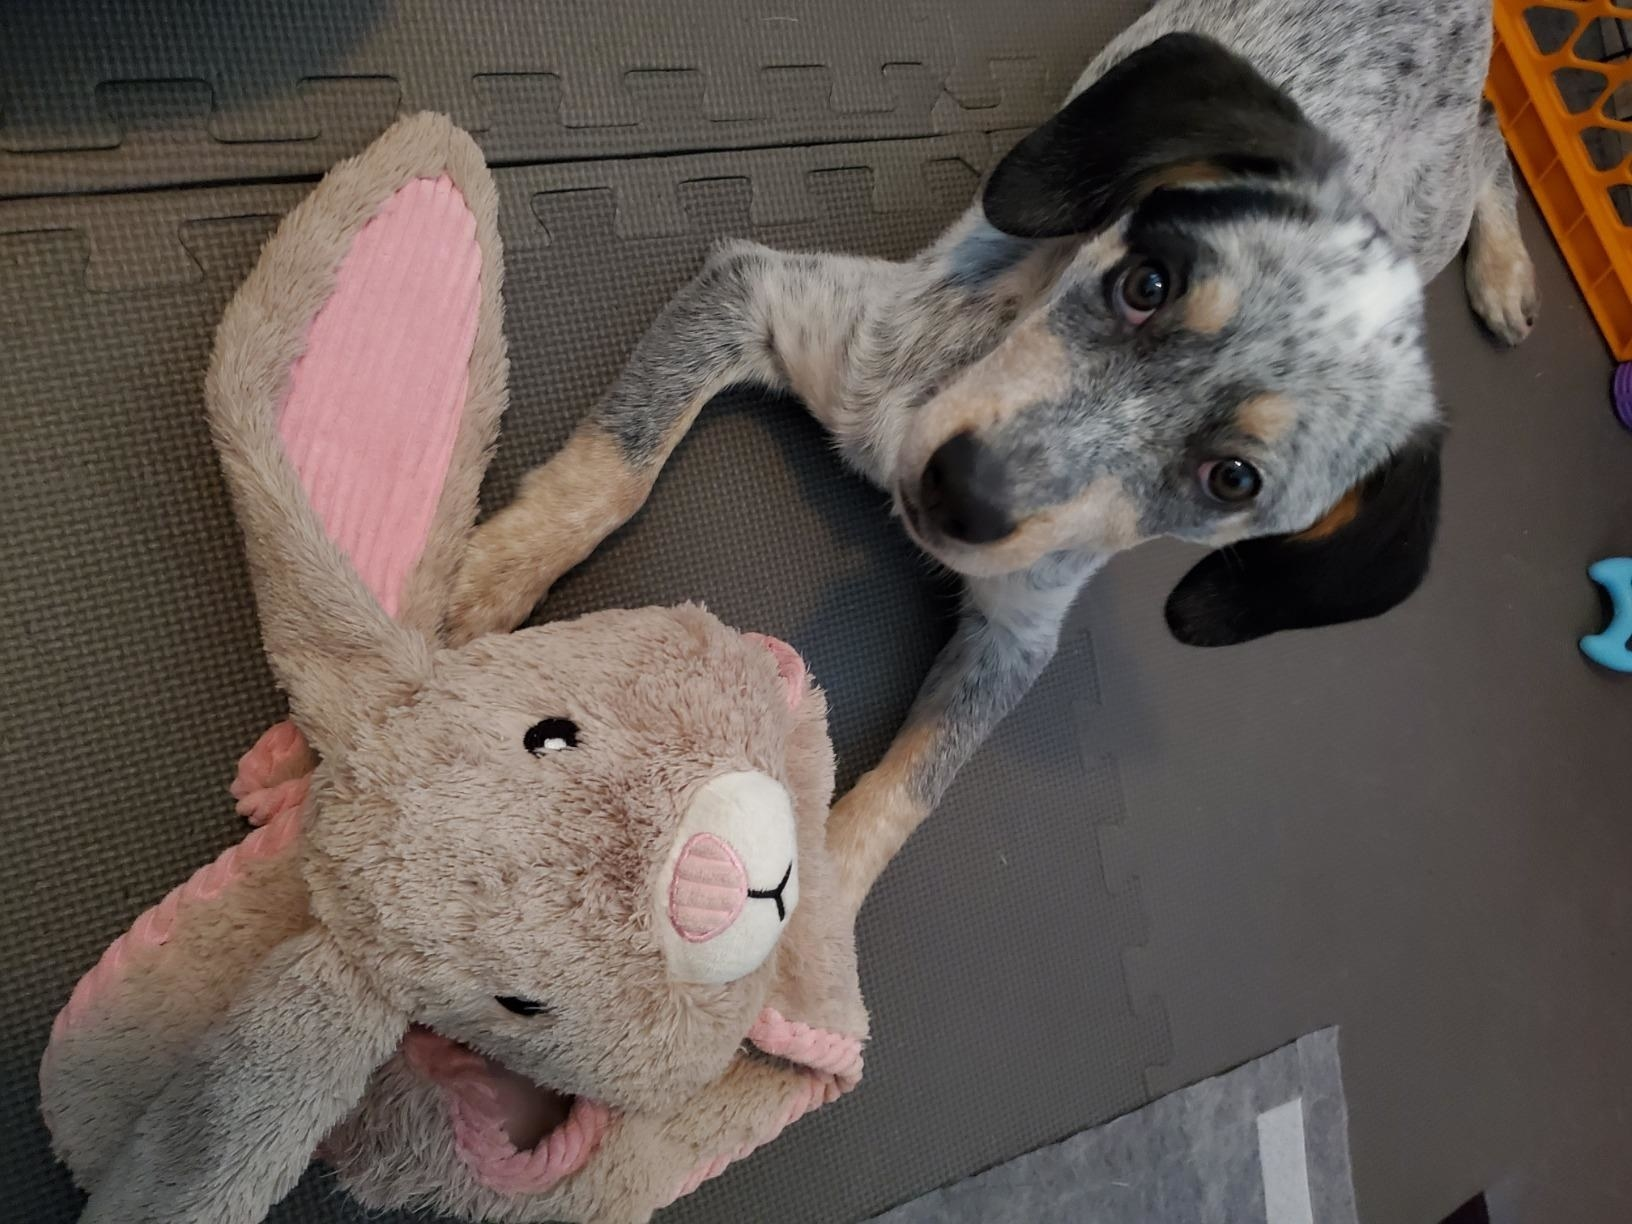 A dog plays with the toy, which has a plush stuffed animal head, and thin plush body for tugging